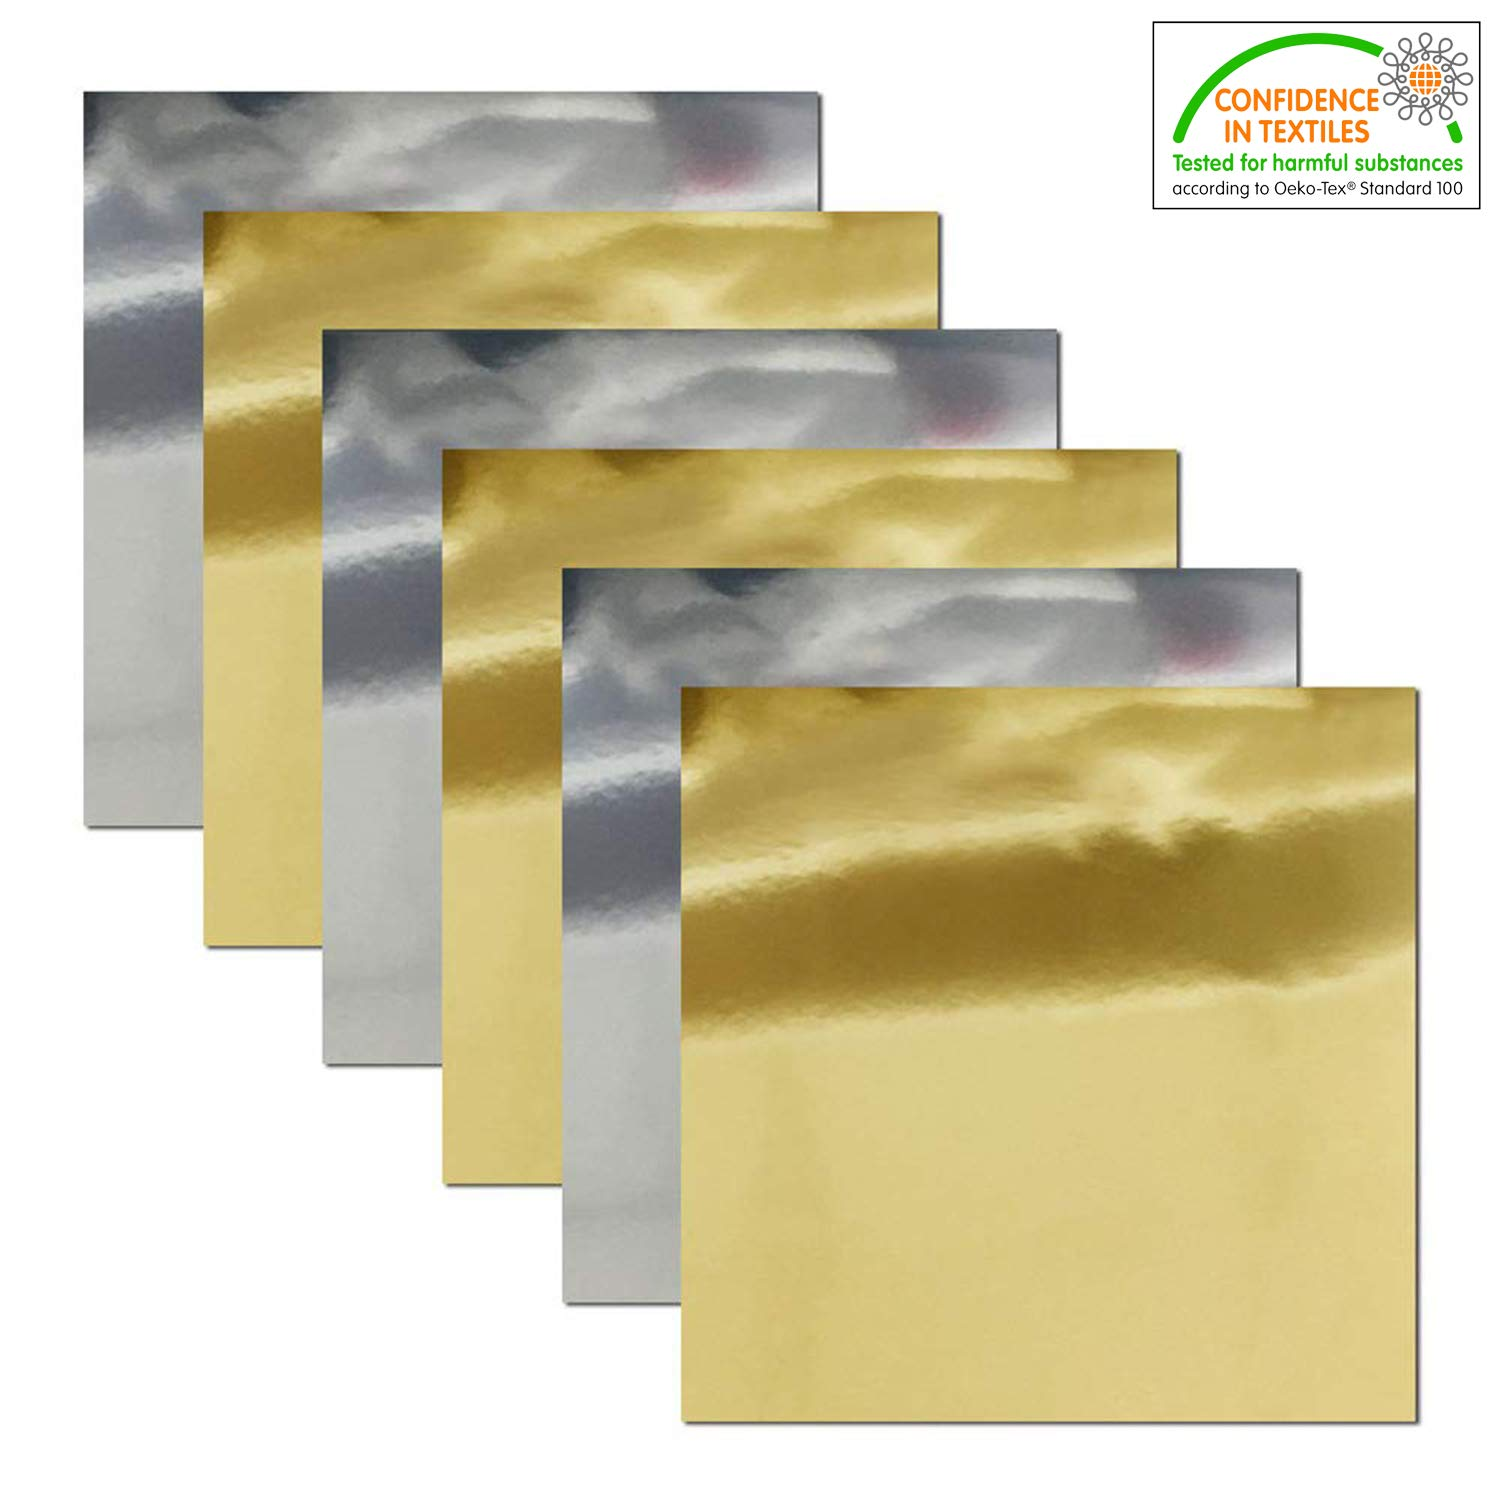 Stretchable Metallic Heat Transfer Vinyl Gold&Silver Foil, Iron On HTV Bundle for DIY Your Own Clothes, 12x10 Inch, Pack of 6, Eco-Friendly